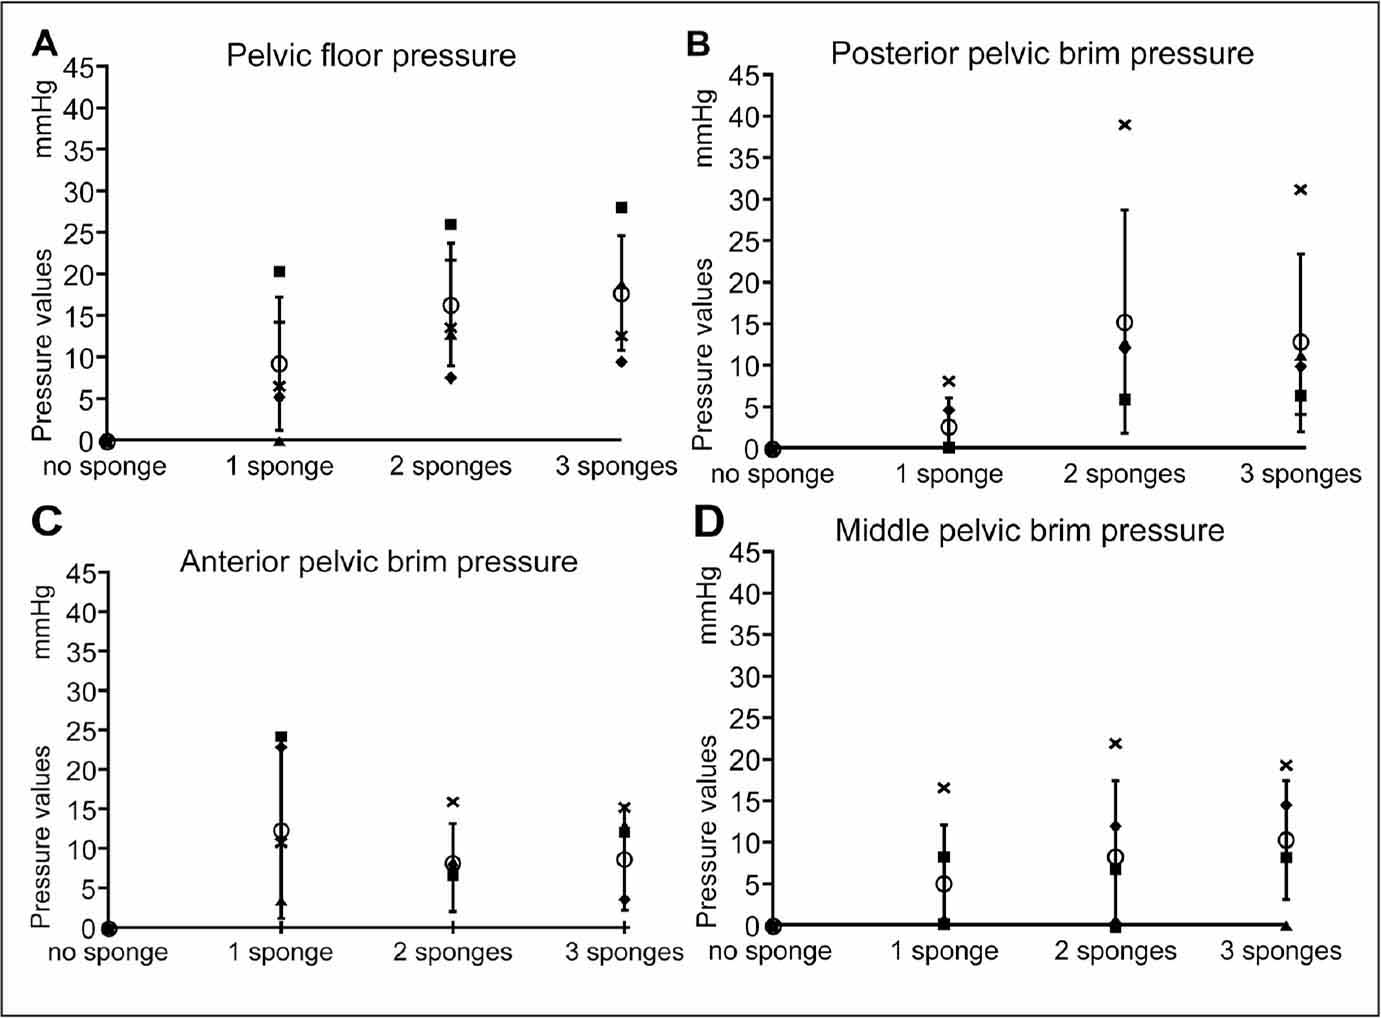 Bar graph showing the relationship between the number of packed sponges and the pressure recorded at each sensor location for each of 5 specimens. Pelvic floor pressure (A). Posterior pelvic brim pressure (B). Anterior pelvic brim pressure (C). Middle pelvic brim pressure (D). Symbols indicate specimen number: specimen 1, ■; specimen 2, ♦; specimen 3, ▲; specimen 4, ×; and specimen 5, +. The mean pressure across all 5 specimens (○) is also shown, with error bars indicating standard deviation.